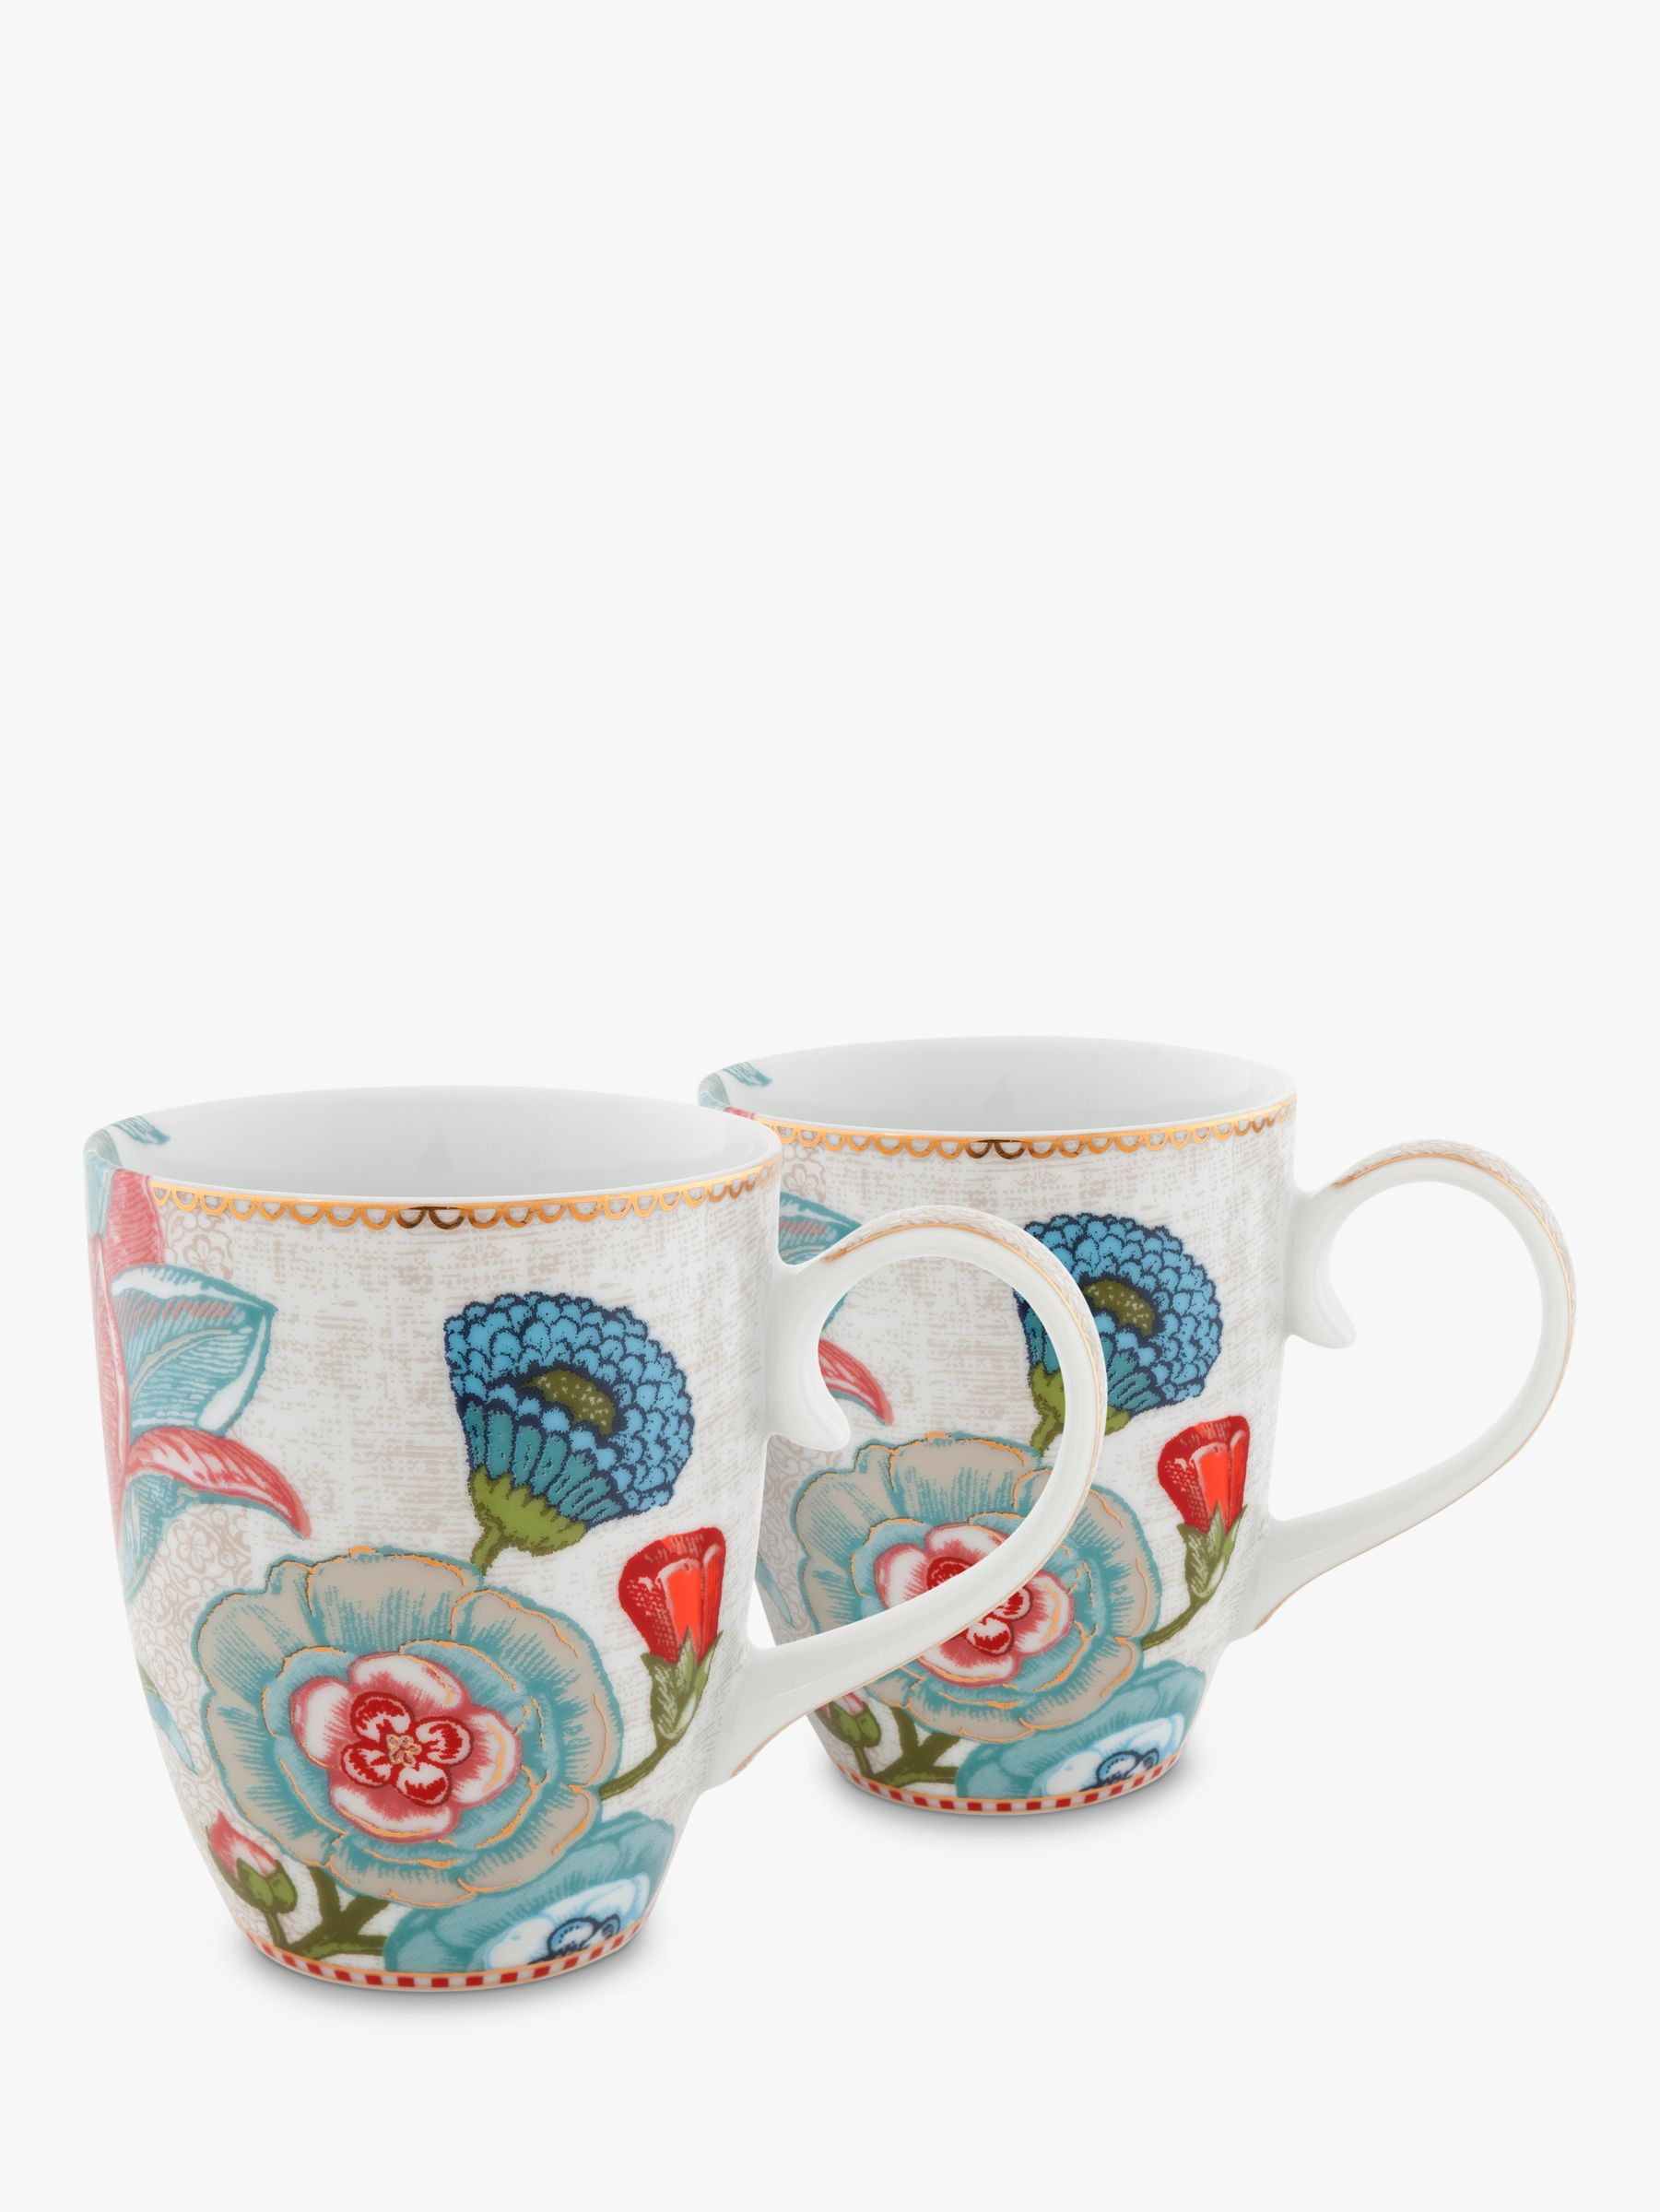 PiP Studio PiP Studio Spring to Life Large Mug, Set of 2, Cream